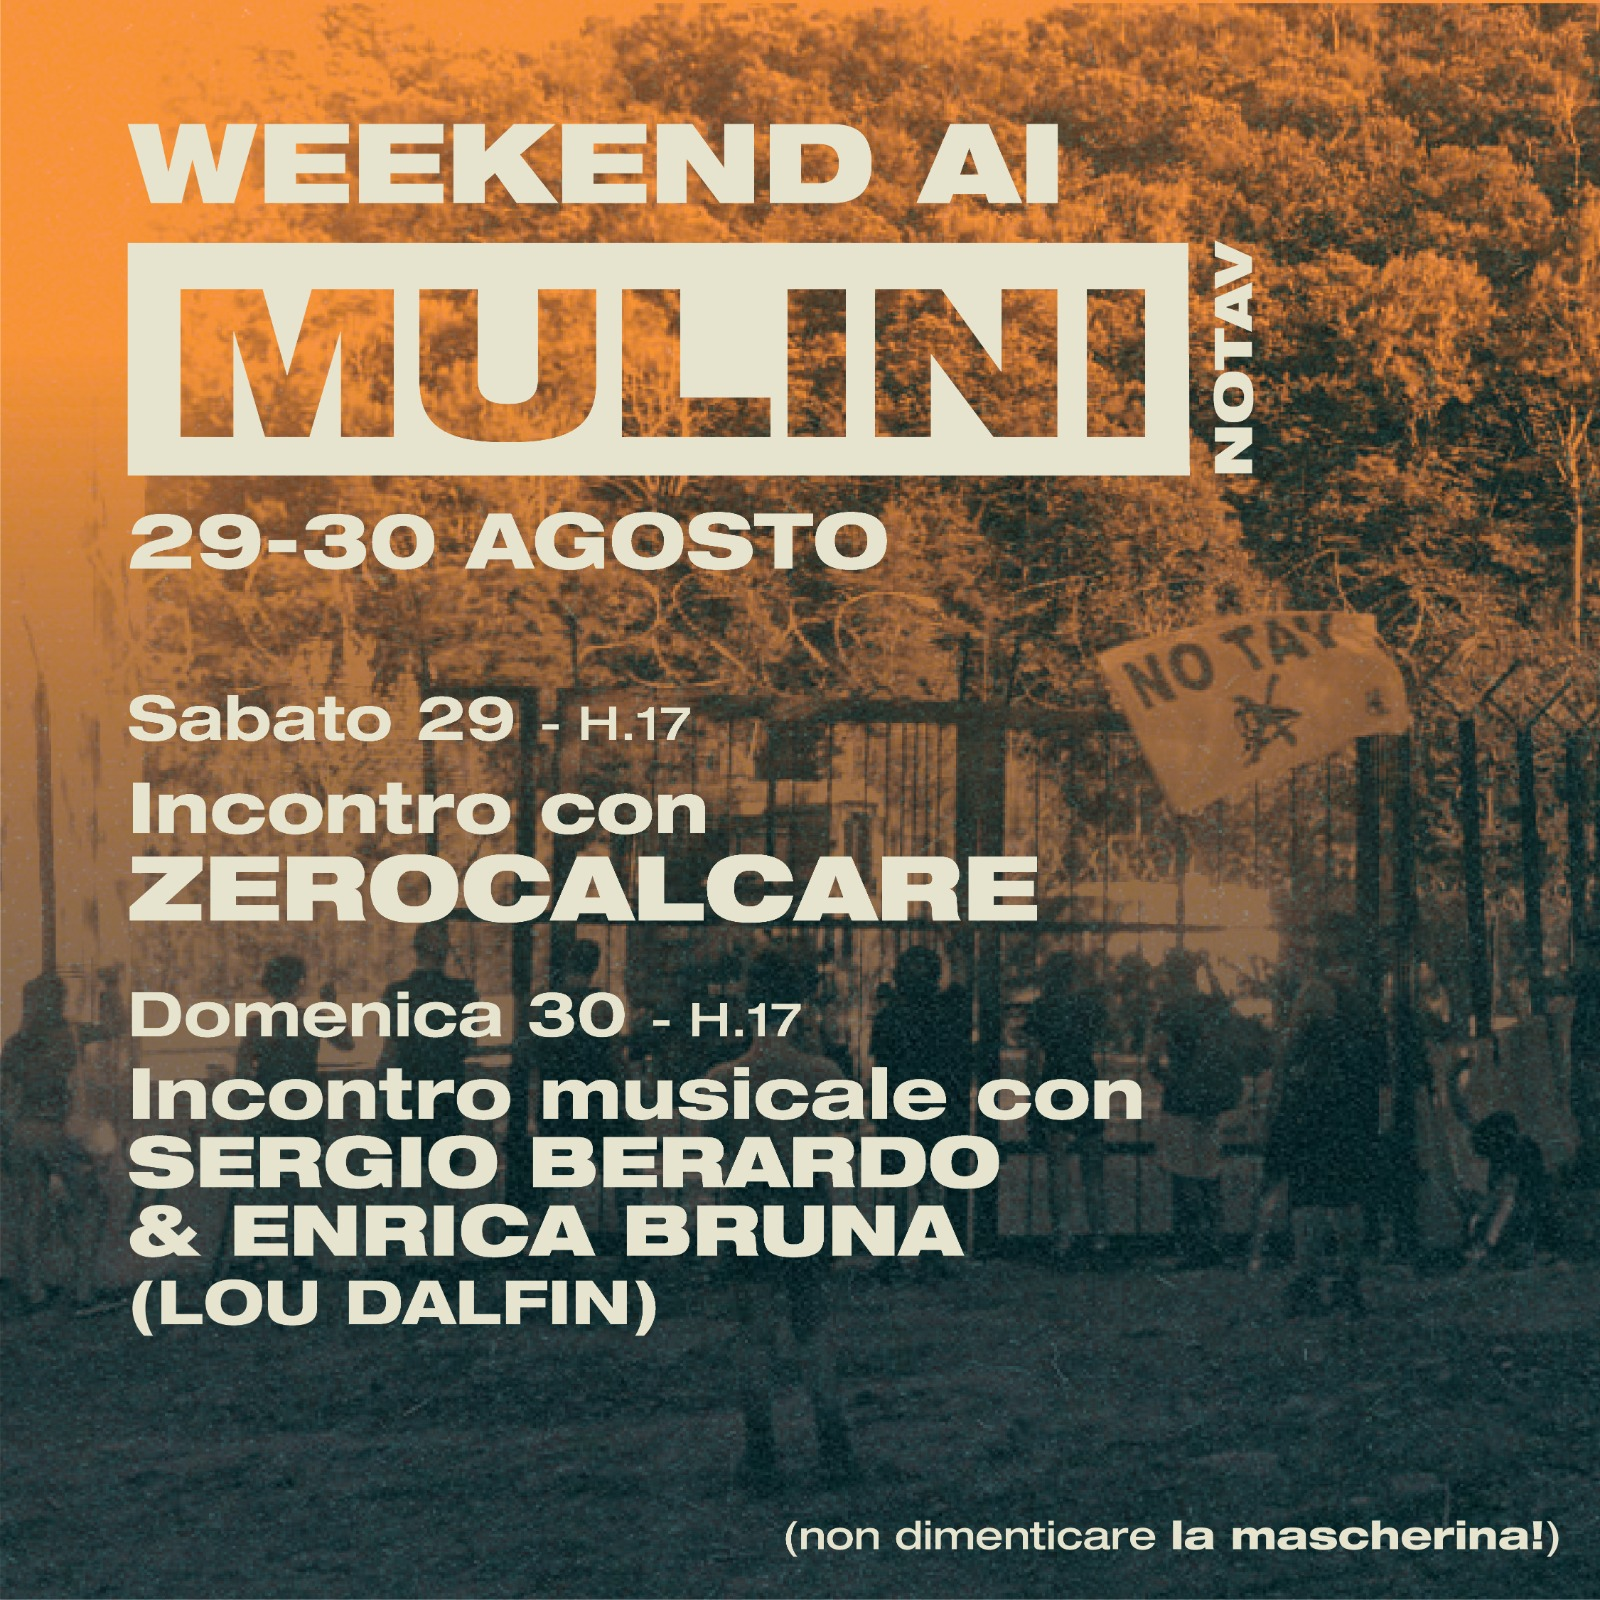 Flyer for events at the Presidio Mulini in late August